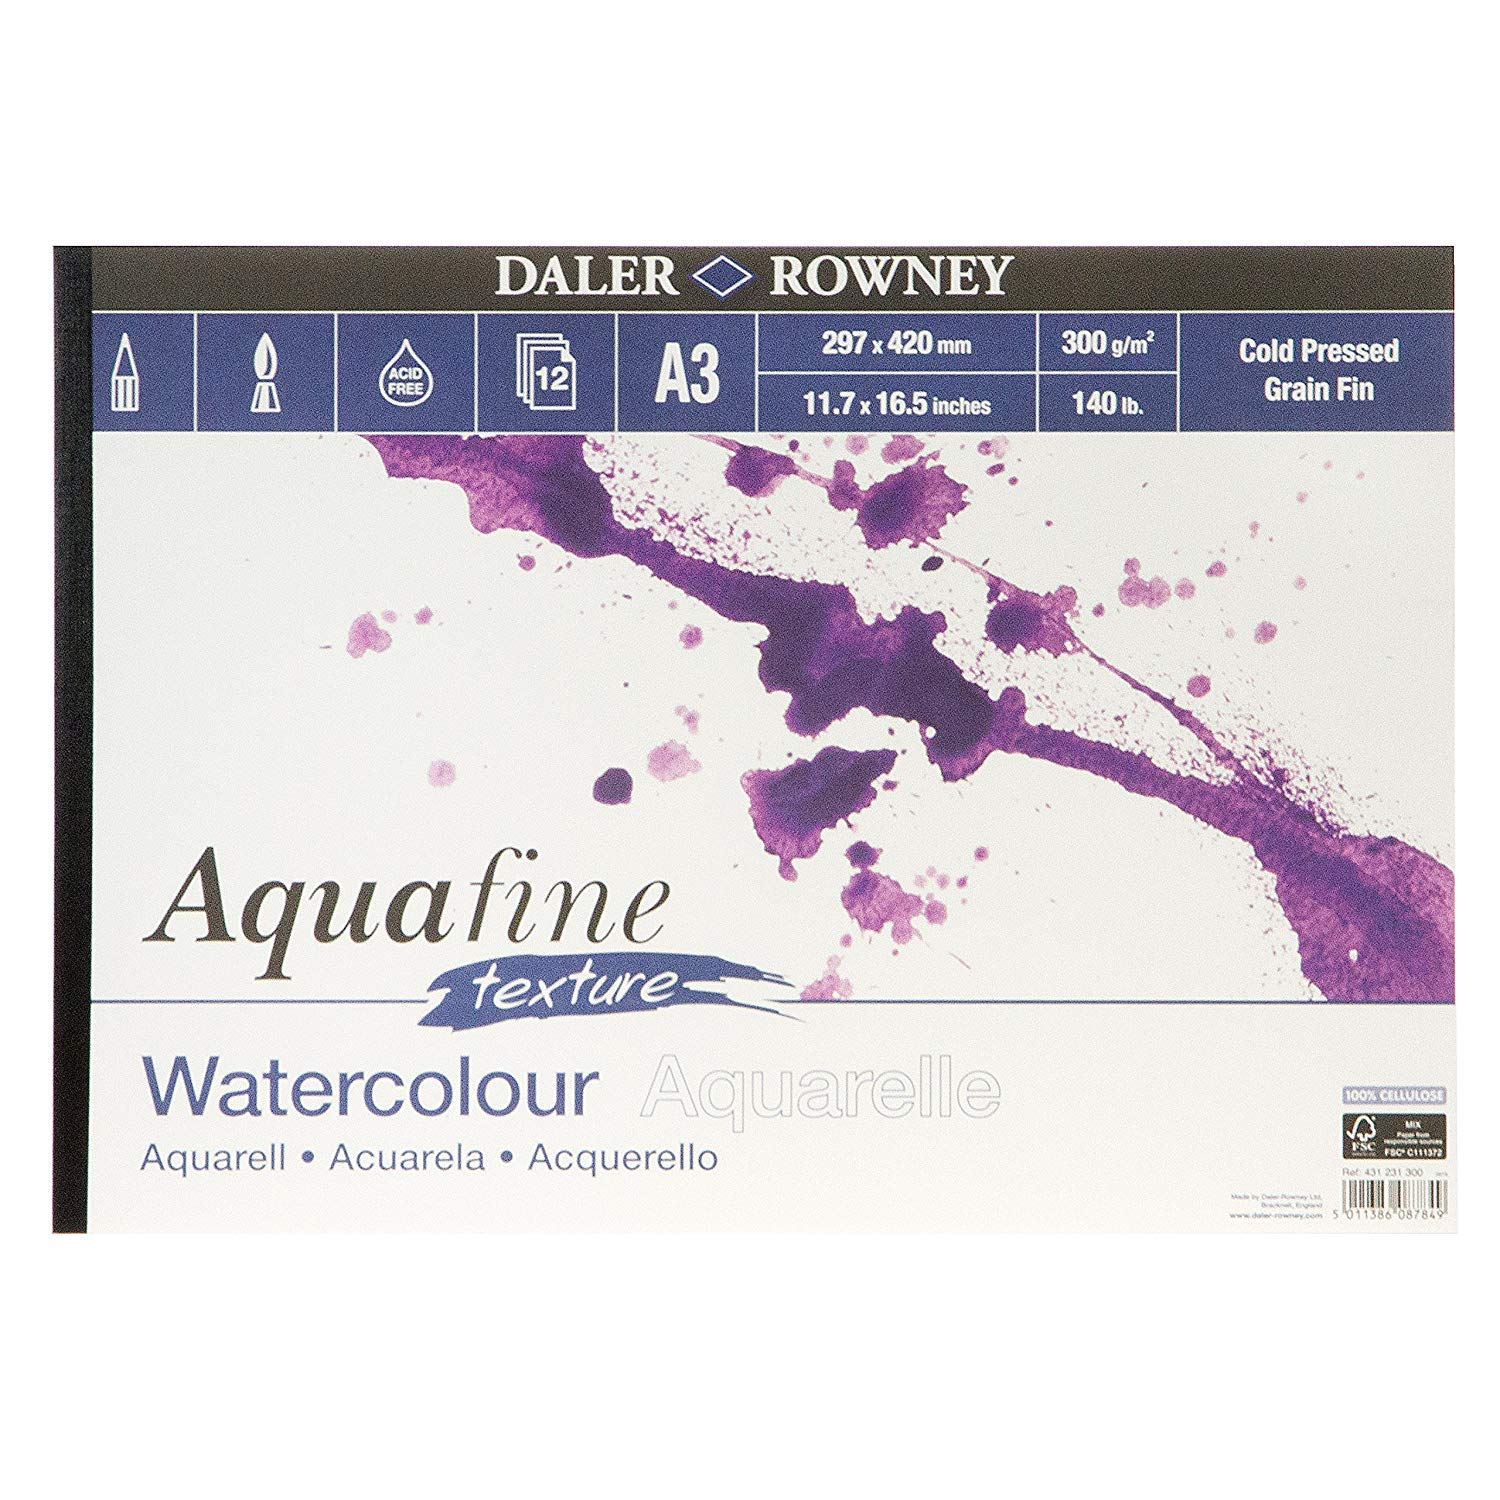 2X Aquafine Aquarelle Artists Watercolour Texture pad A3 Cold Pressed Daler Rowney